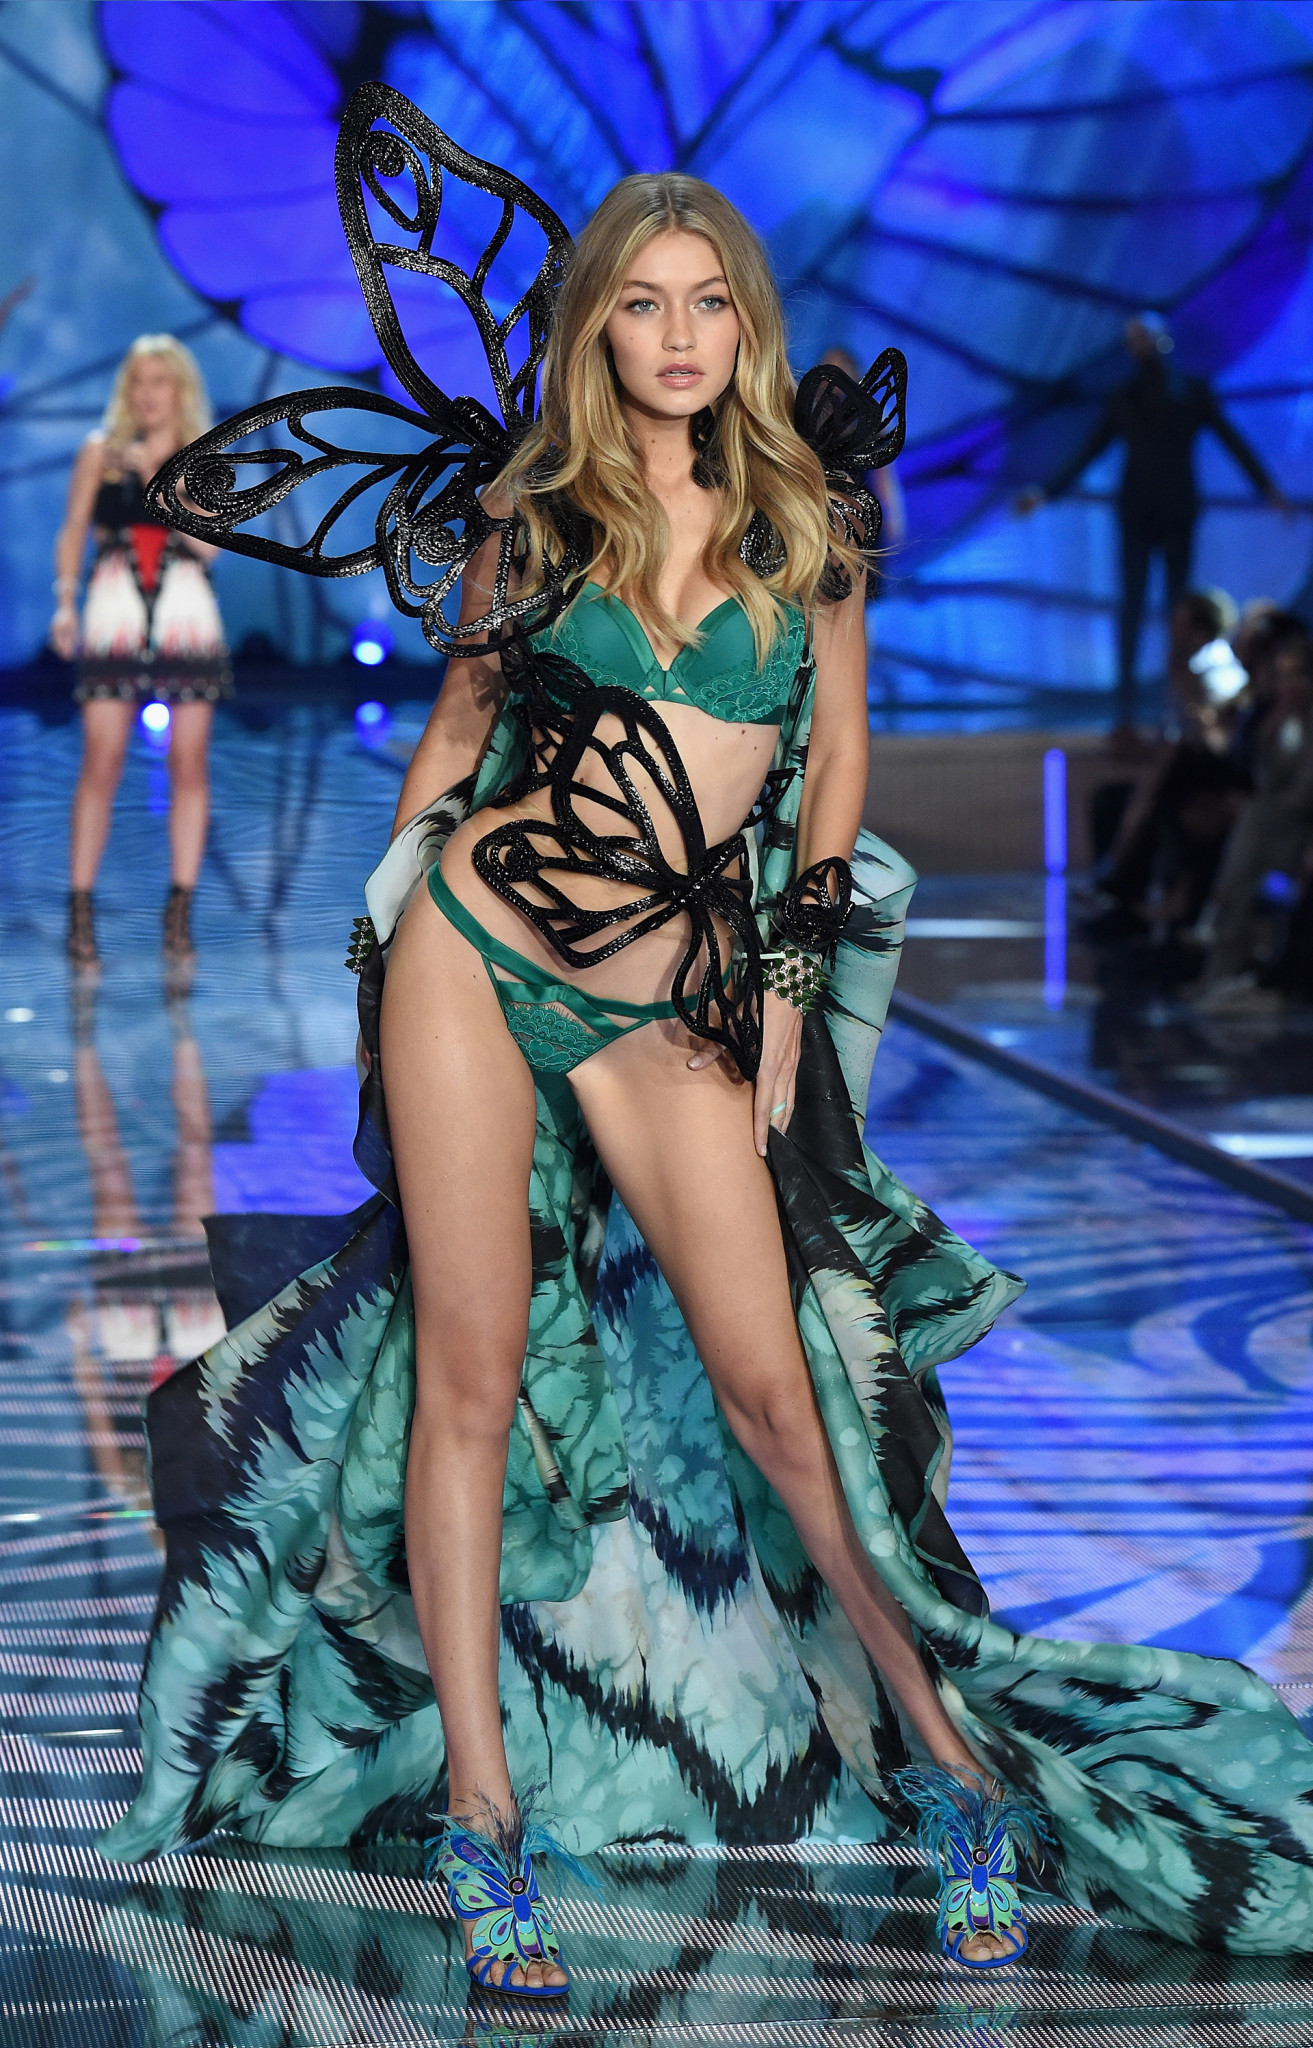 NEW YORK, NY - NOVEMBER 10: Model Gigi Hadid walks the runway during the 2015 Victoria's Secret Fashion Show